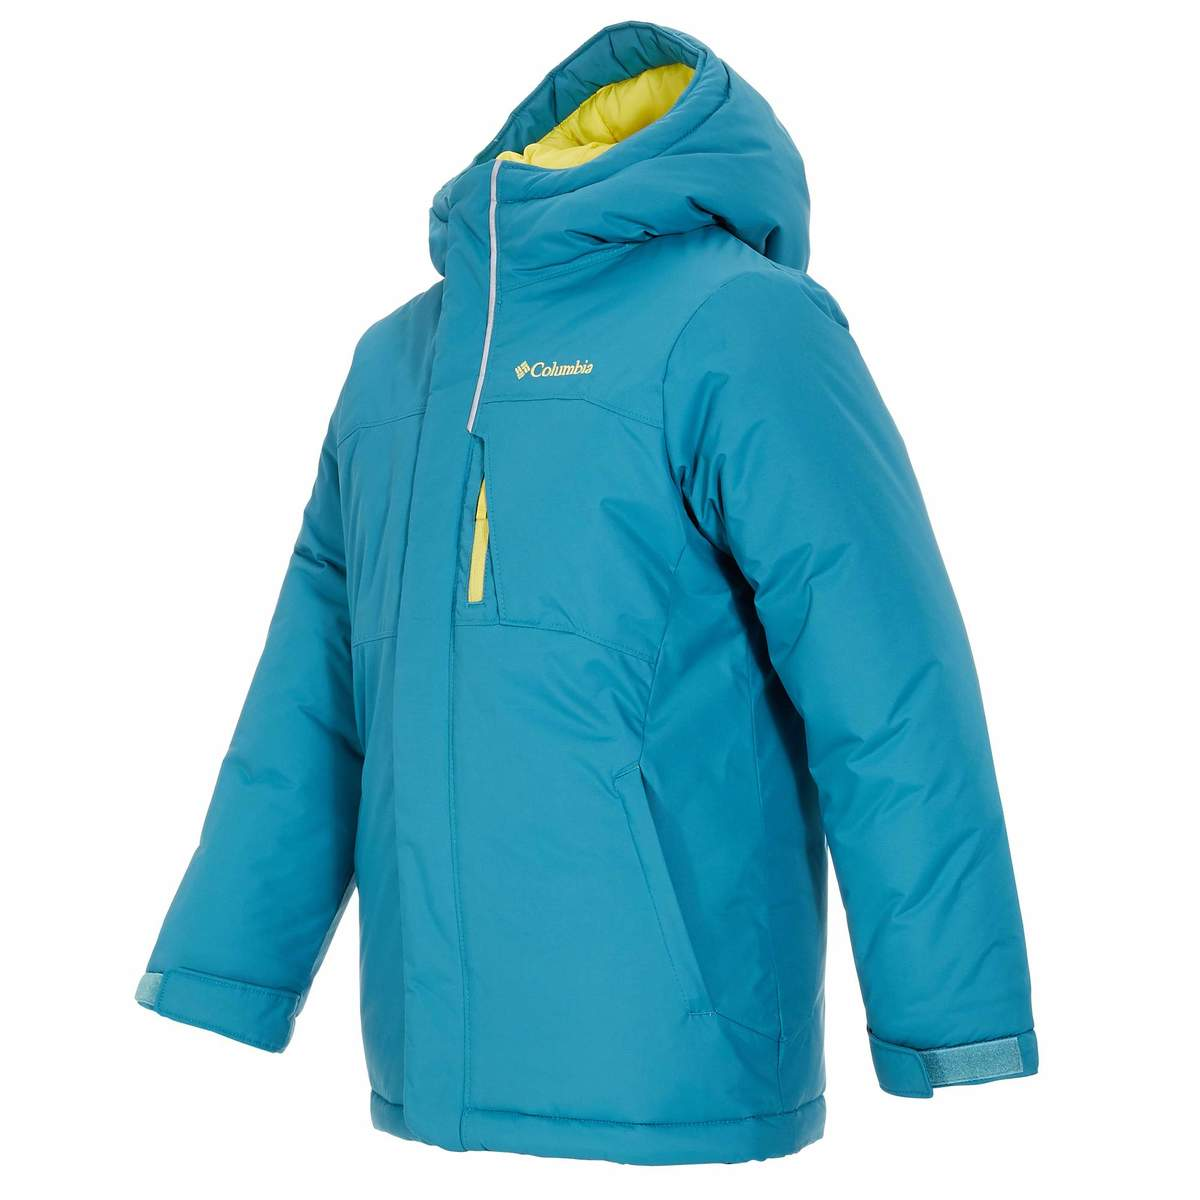 Bild 2 von Columbia Alpine Free Fall Jacket Kinder - Winterjacke